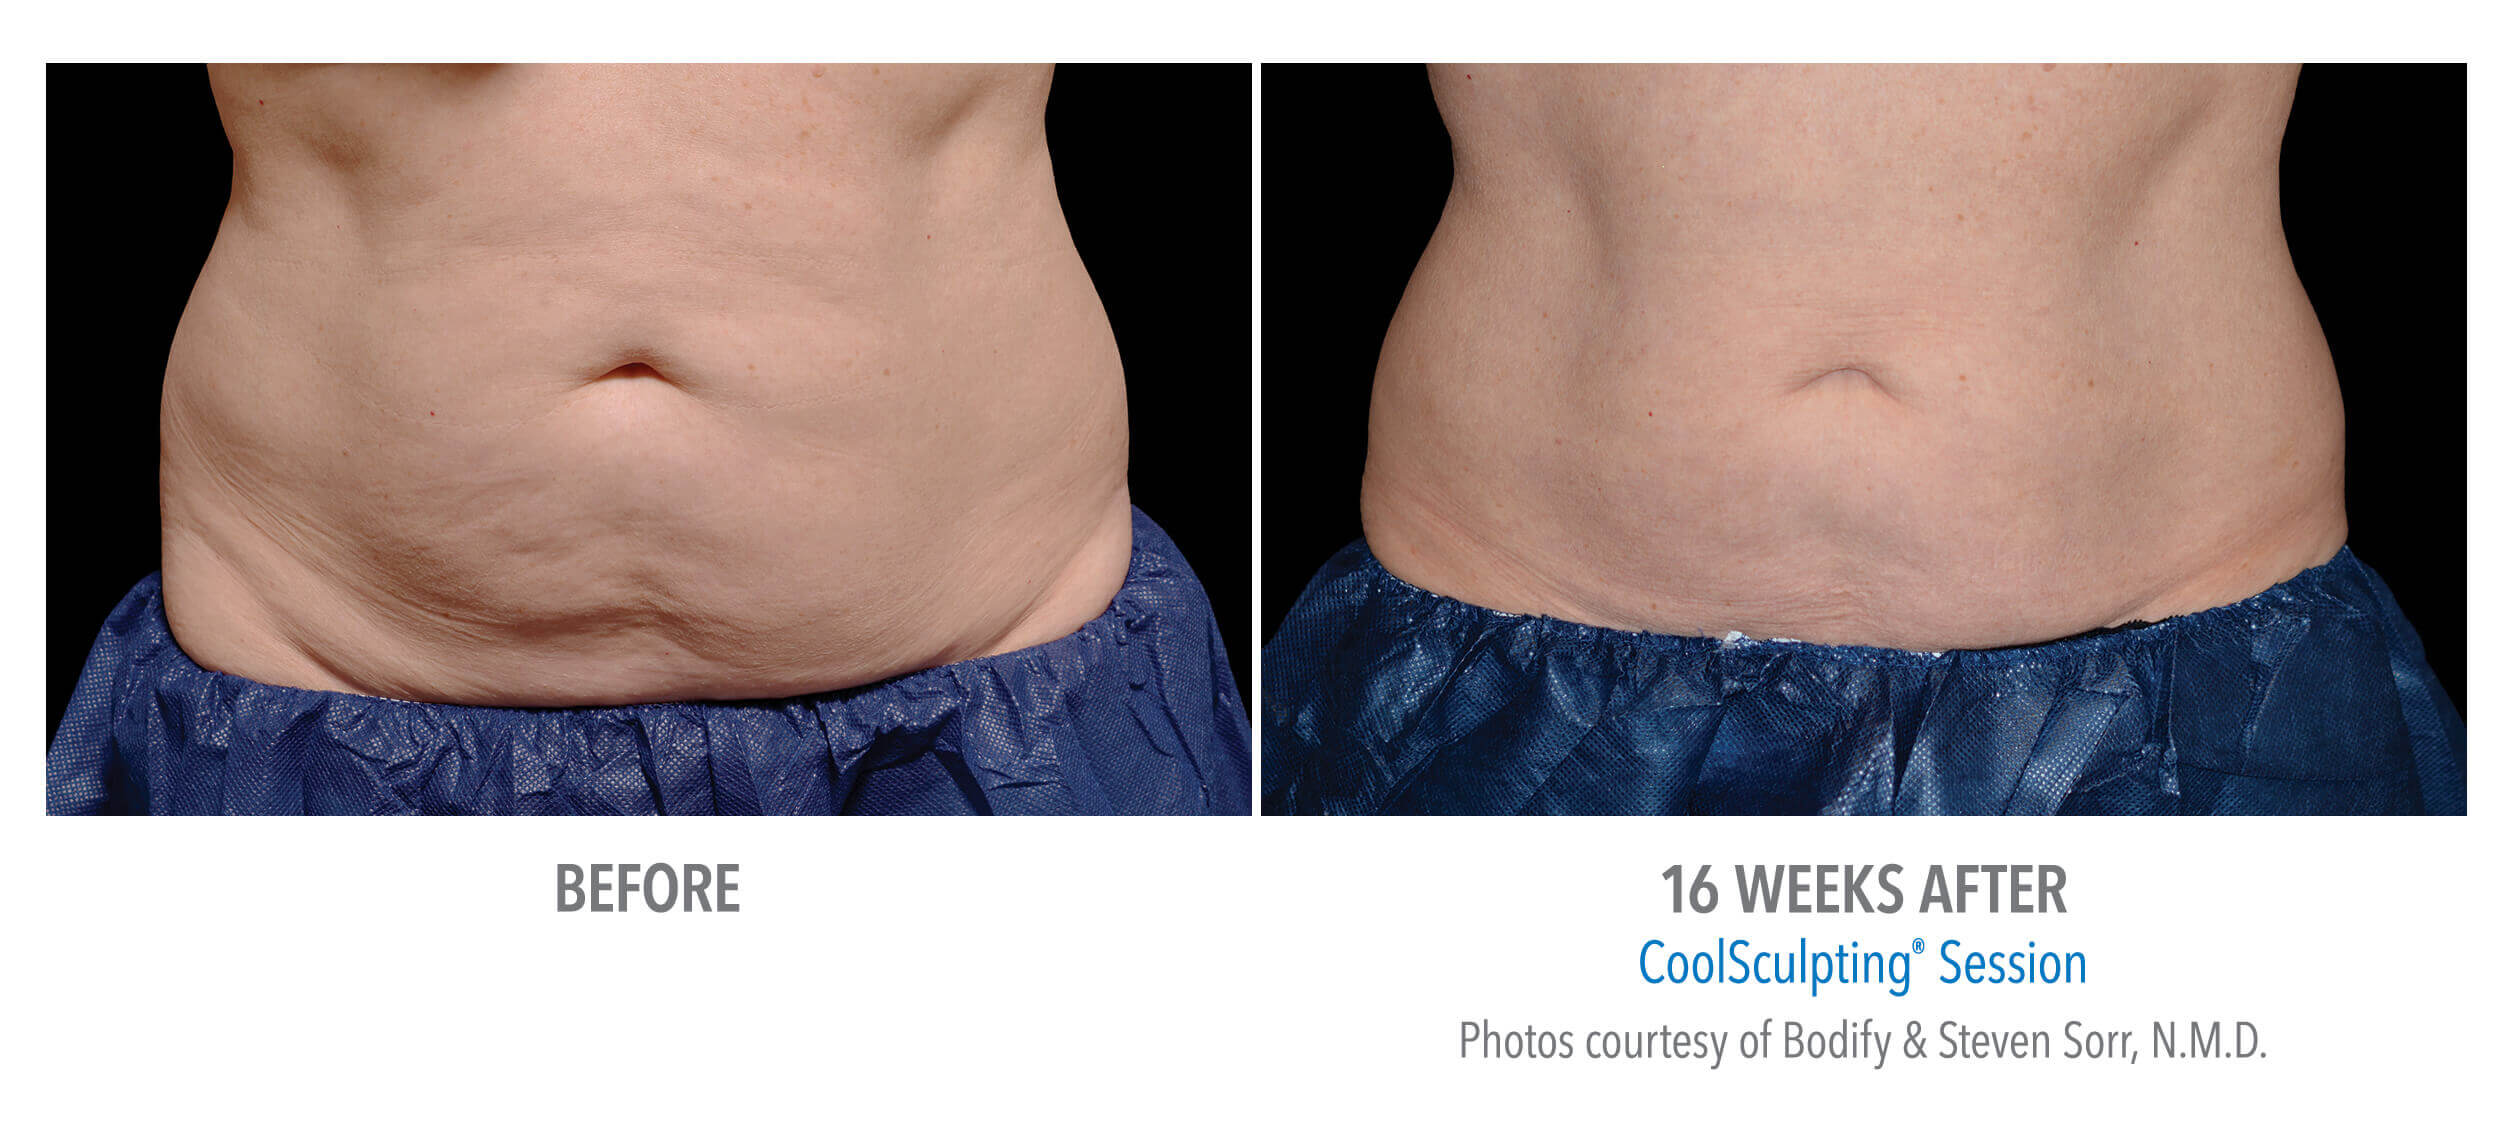 CoolSculpting Stomach Before and After Photo